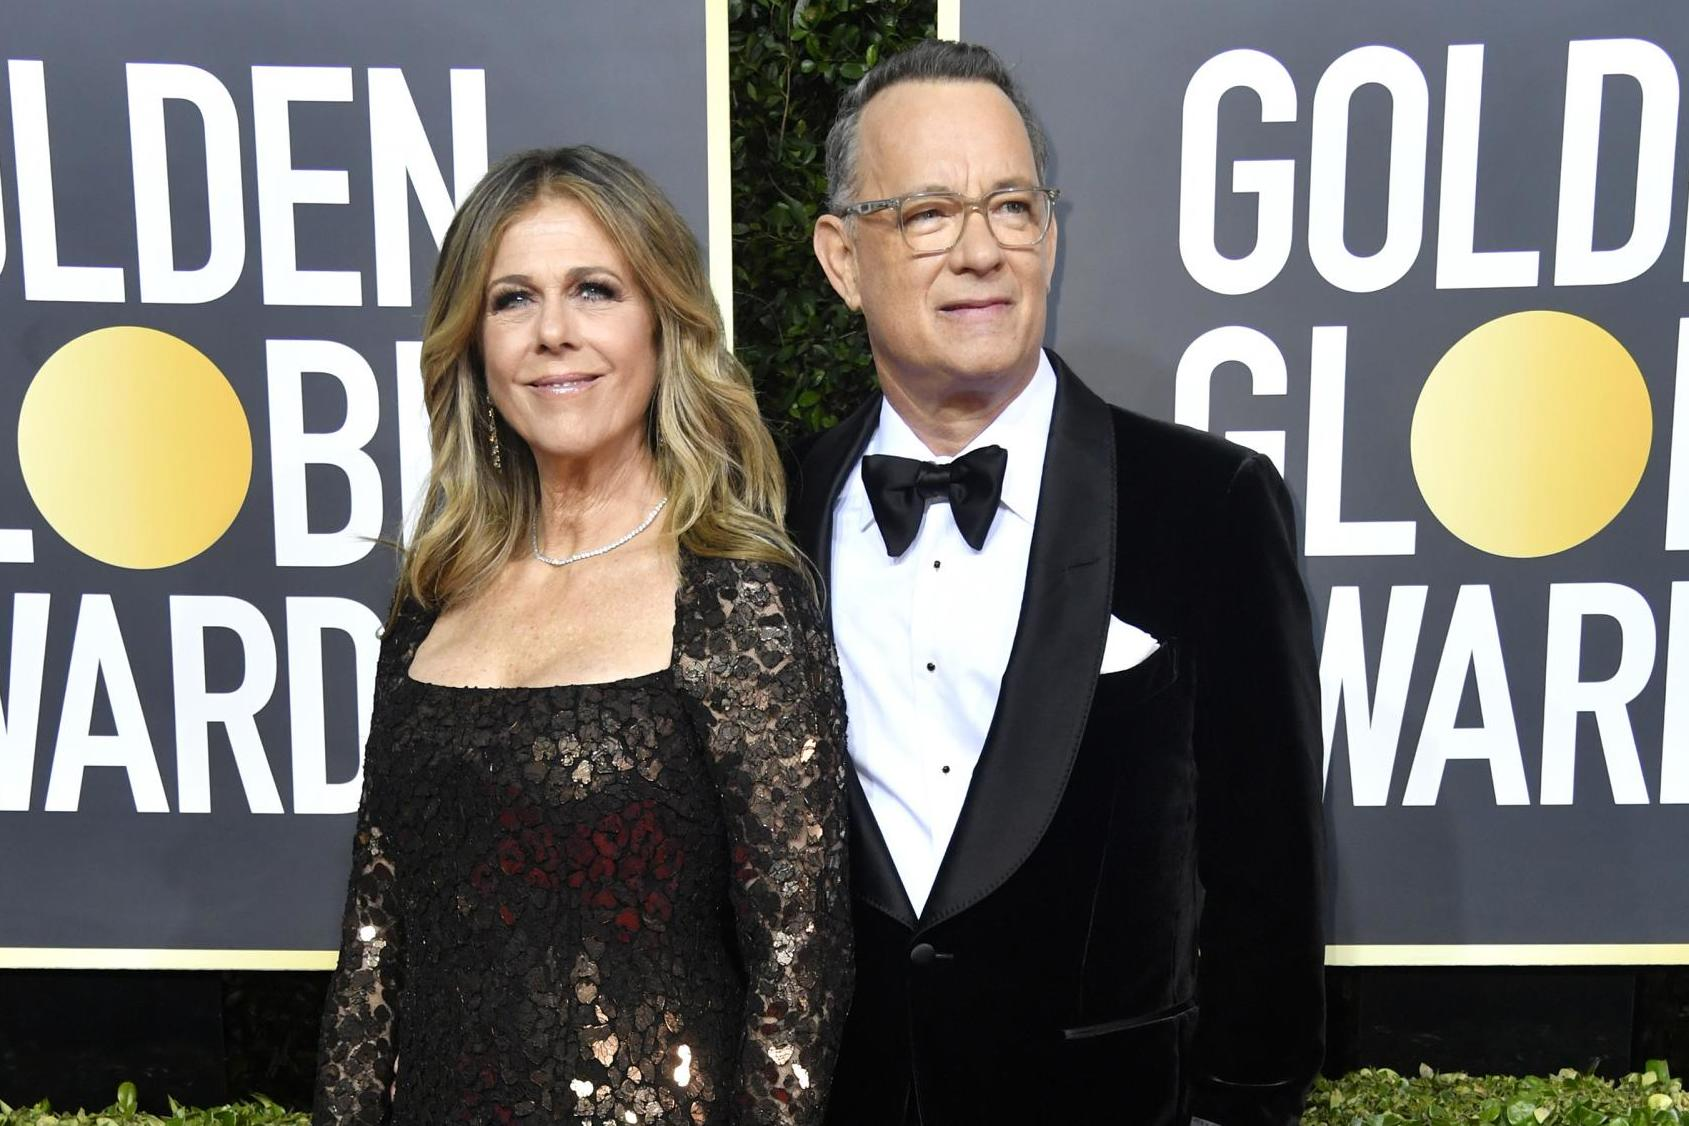 Coronavirus: Tom Hanks sends update to fans after arriving home in LA with Rita Wilson | The Independent